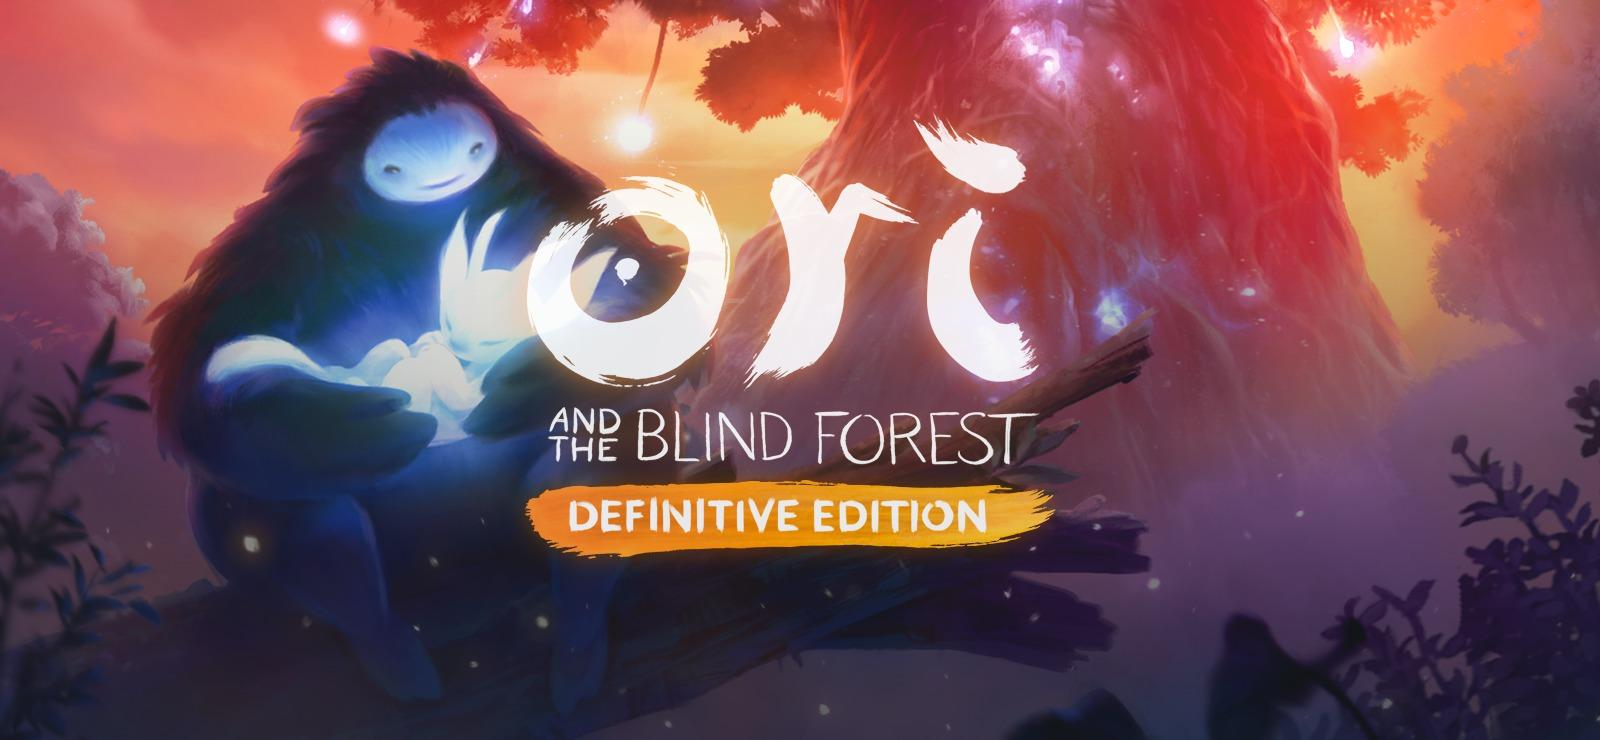 Koniec gry #41 - Ori and the Blind Forest: Definitive Edition